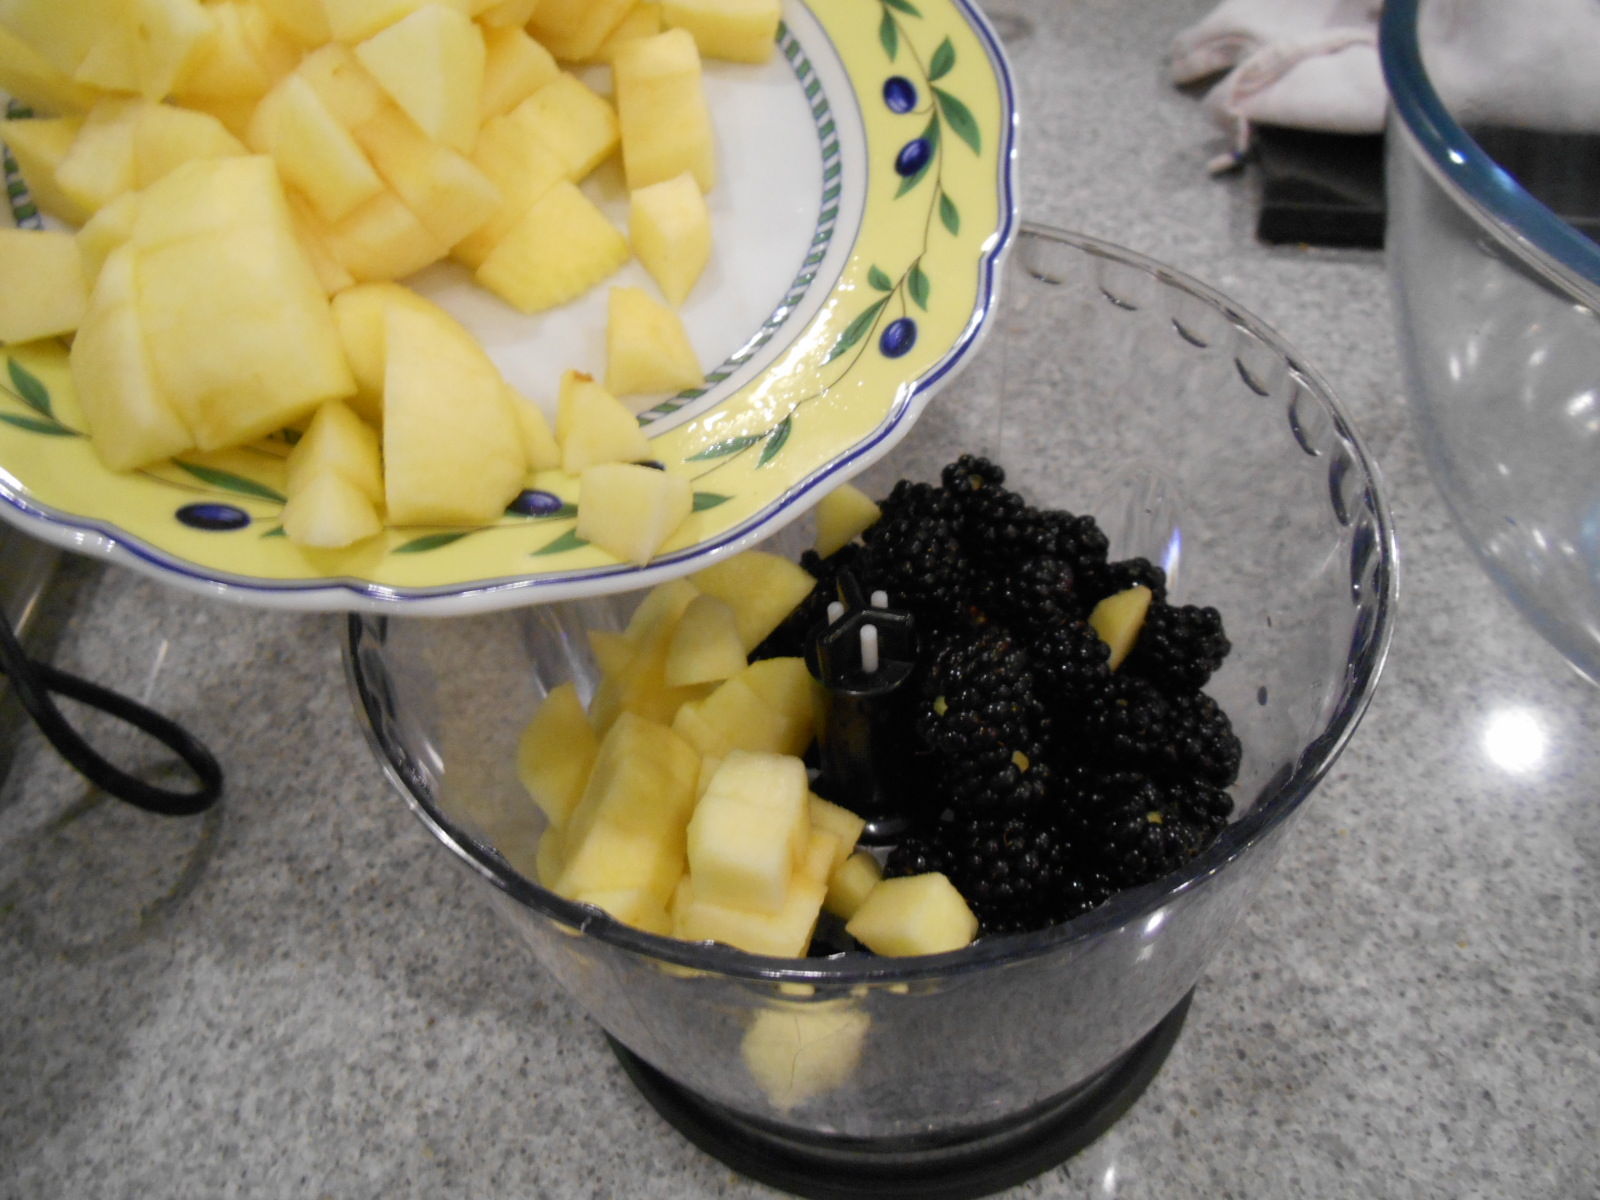 blackberries and apples in first